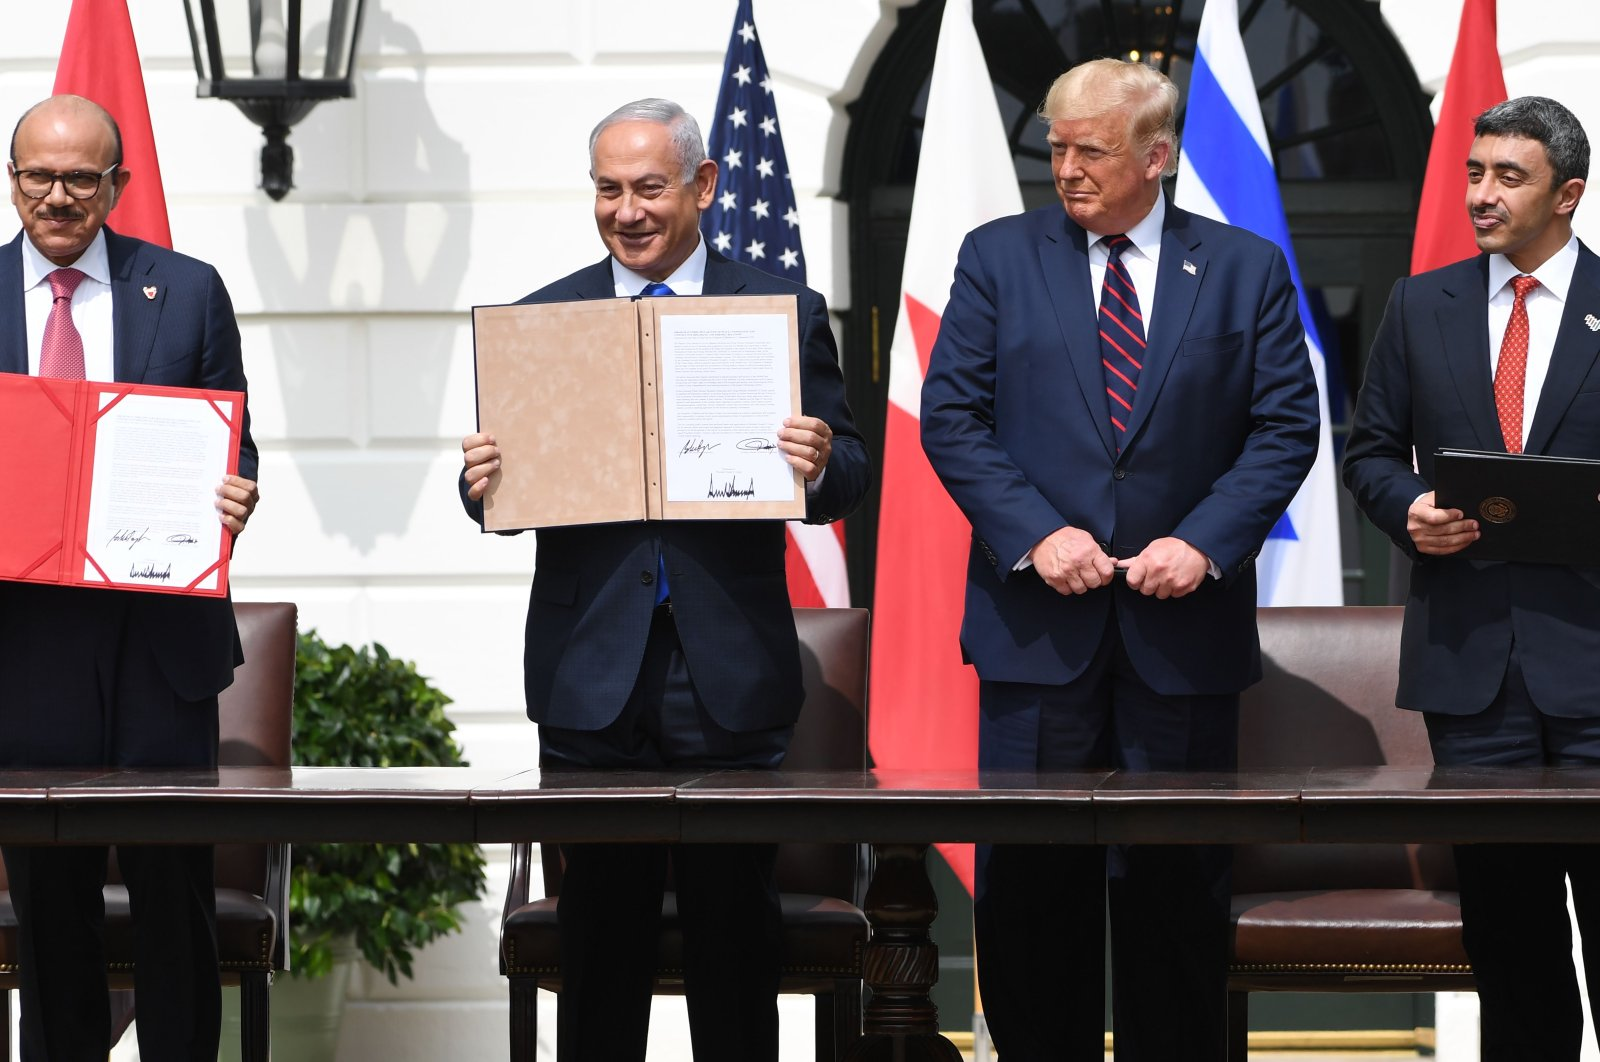 Bahraini Foreign Minister Abdullatif al-Zayani (L), Israeli Prime Minister Benjamin Netanyahu (CL), US President Donald Trump (CR) and UAE Foreign Minister Abdullah bin Zayed Al-Nahyan hold up documents after participating in the signing of the Abraham Accords at the White House in Washington, Sept. 15, 2020. (AFP Photo)